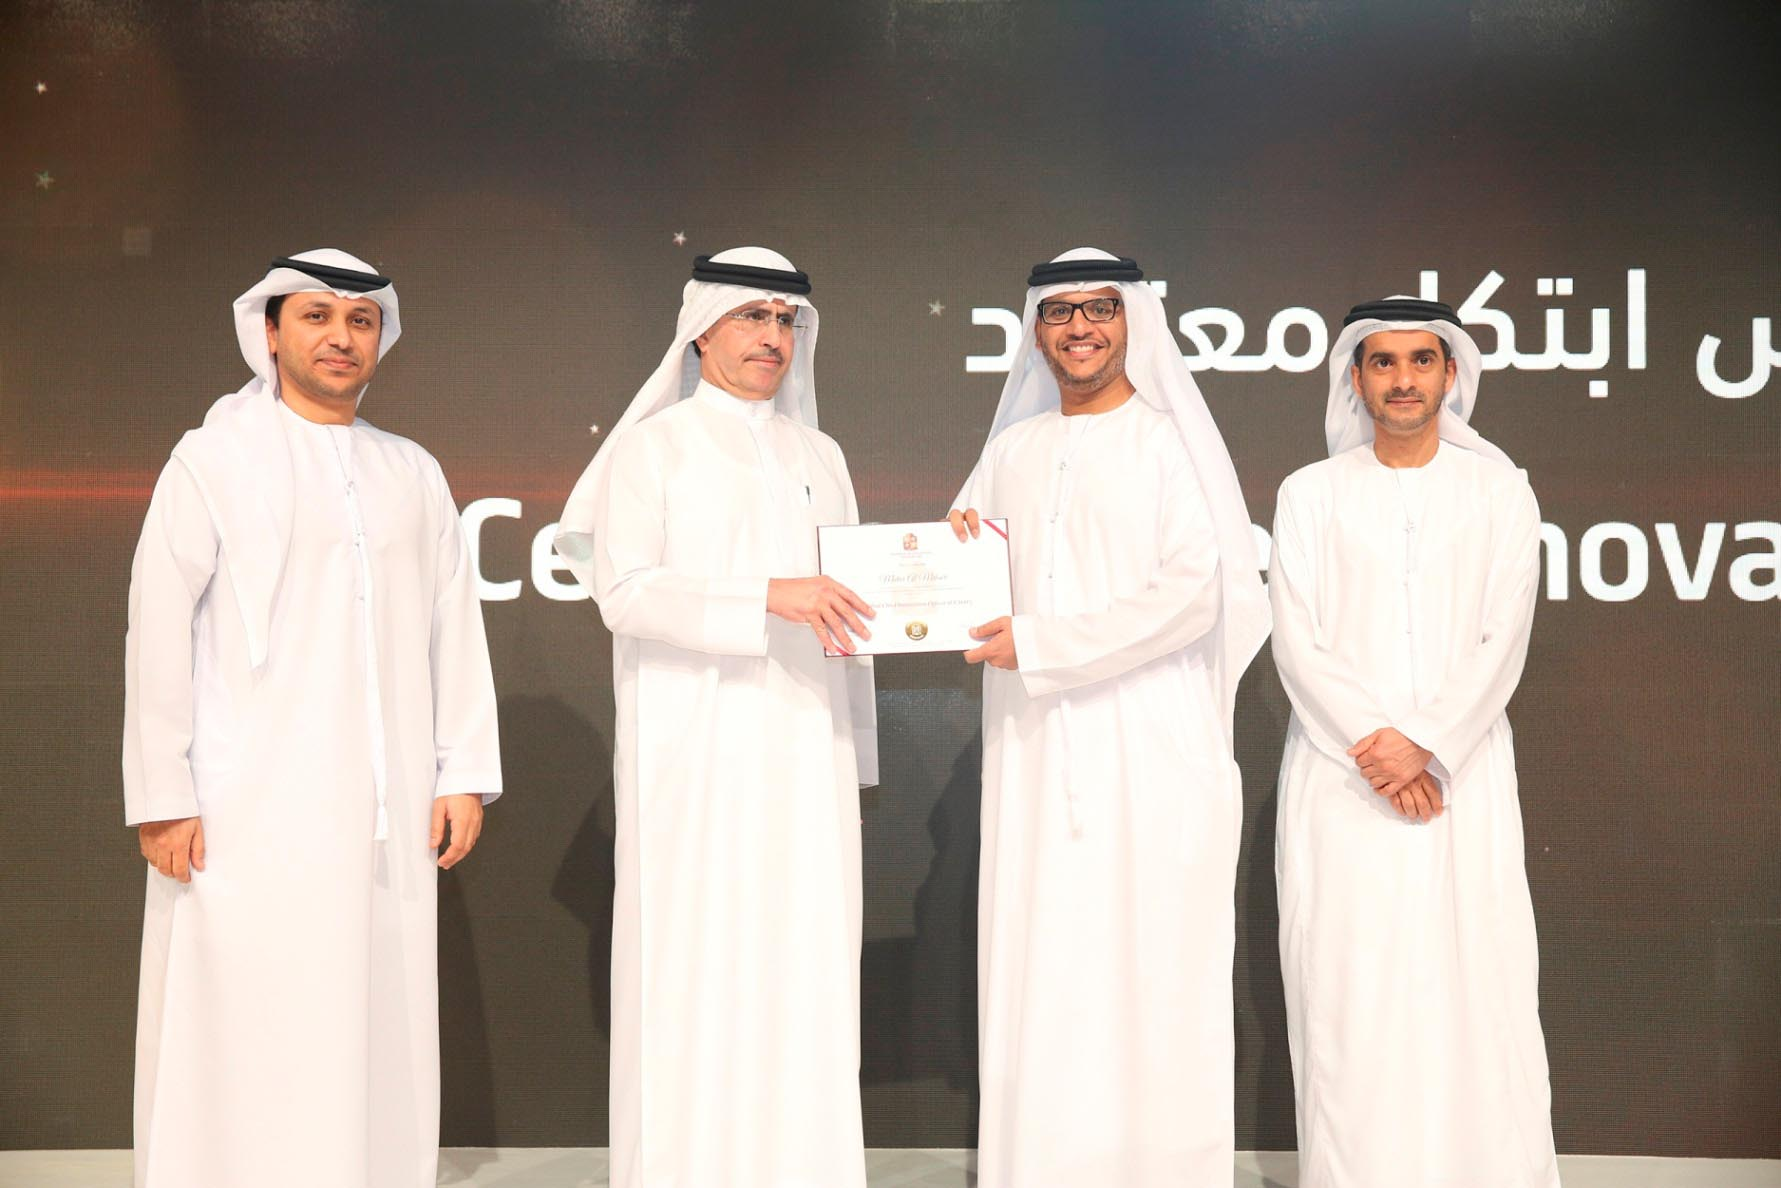 DEWA Honours Winners of Internal Excellence Awards for Second Half of 2016